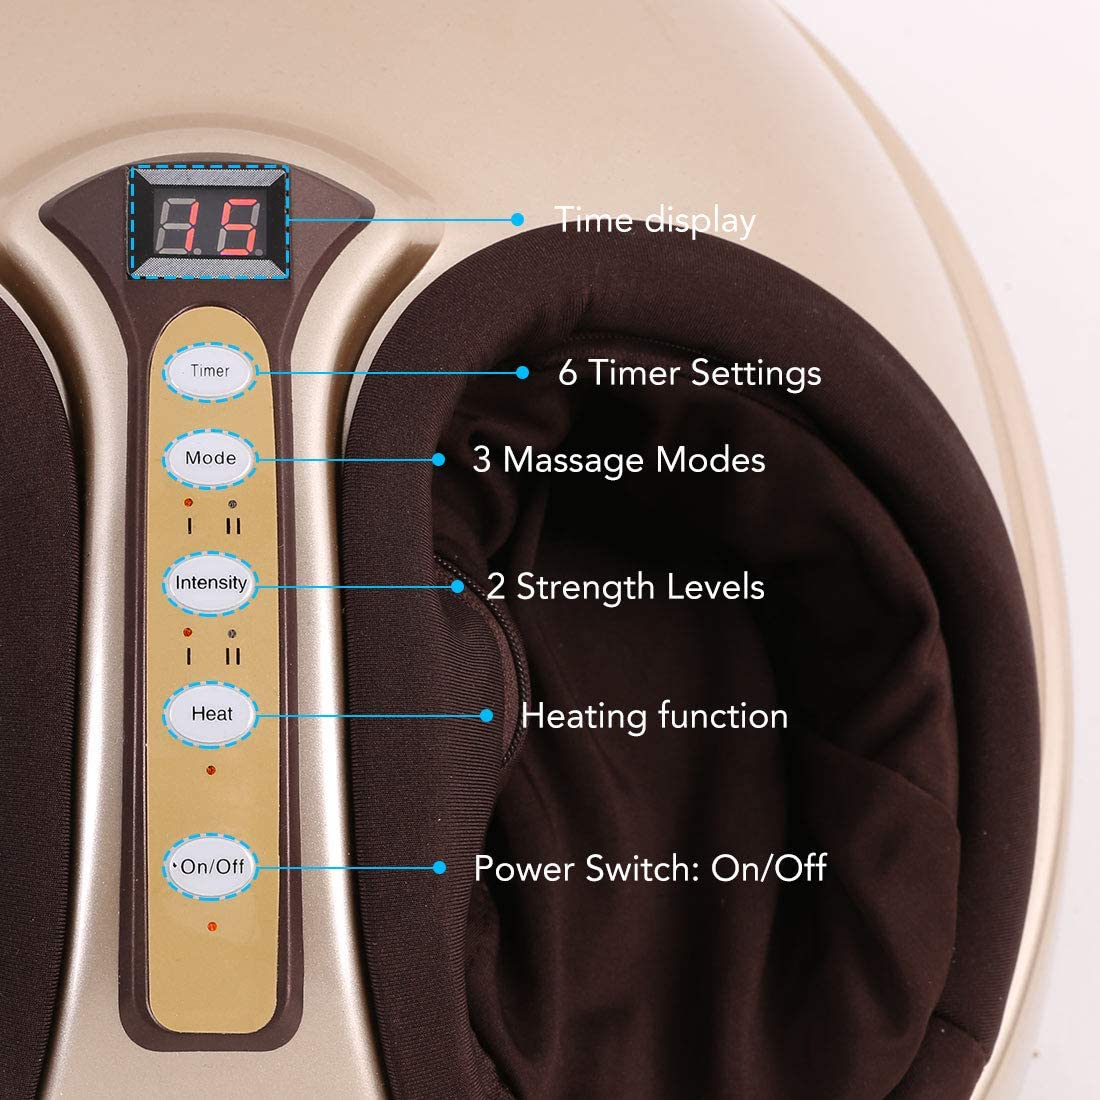 FLEXISPOT Foot Massager Kneading Shiatsu Therapy Plantar Massage with Heat Function Auto-Off Timer and Removable Cover Power Adapter Gold